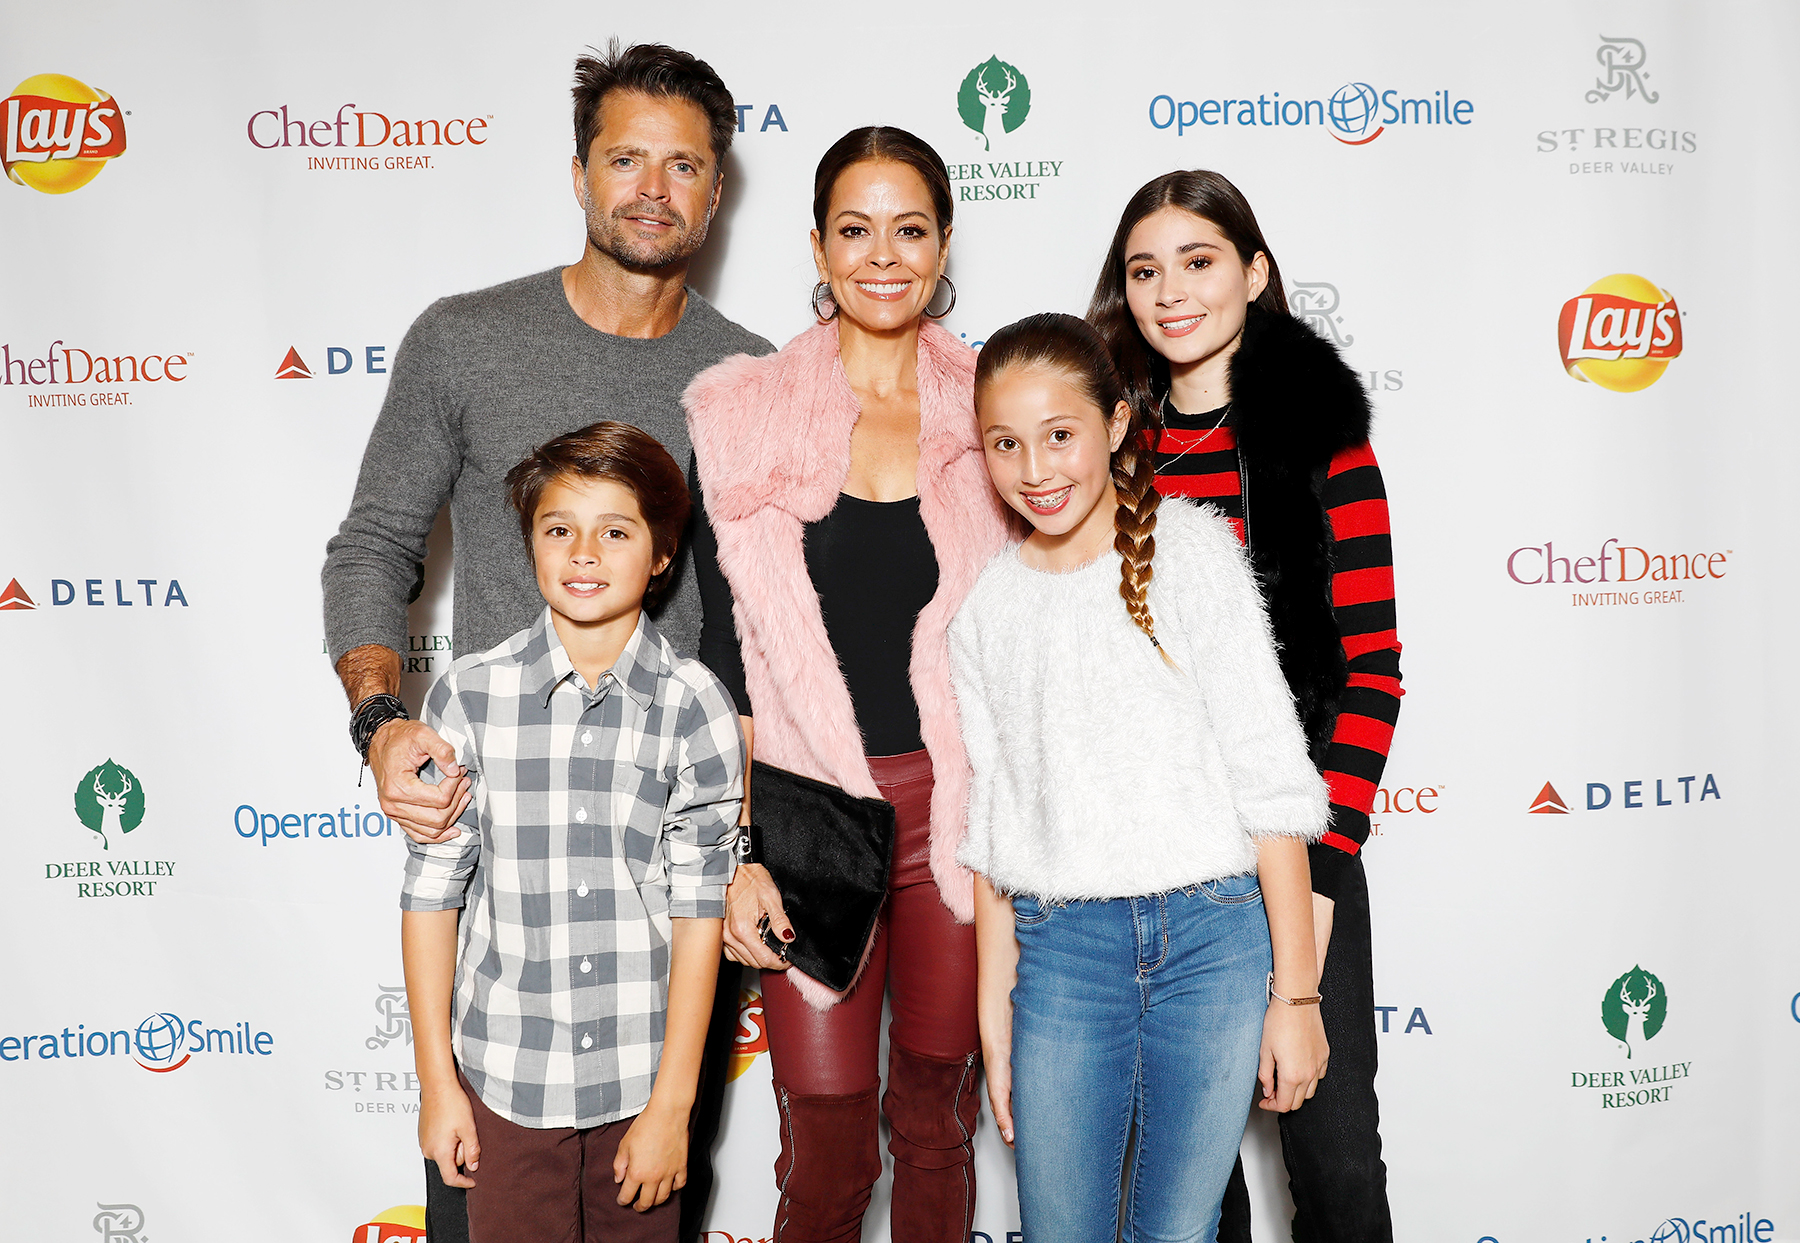 Brooke burke dating sex life rumor